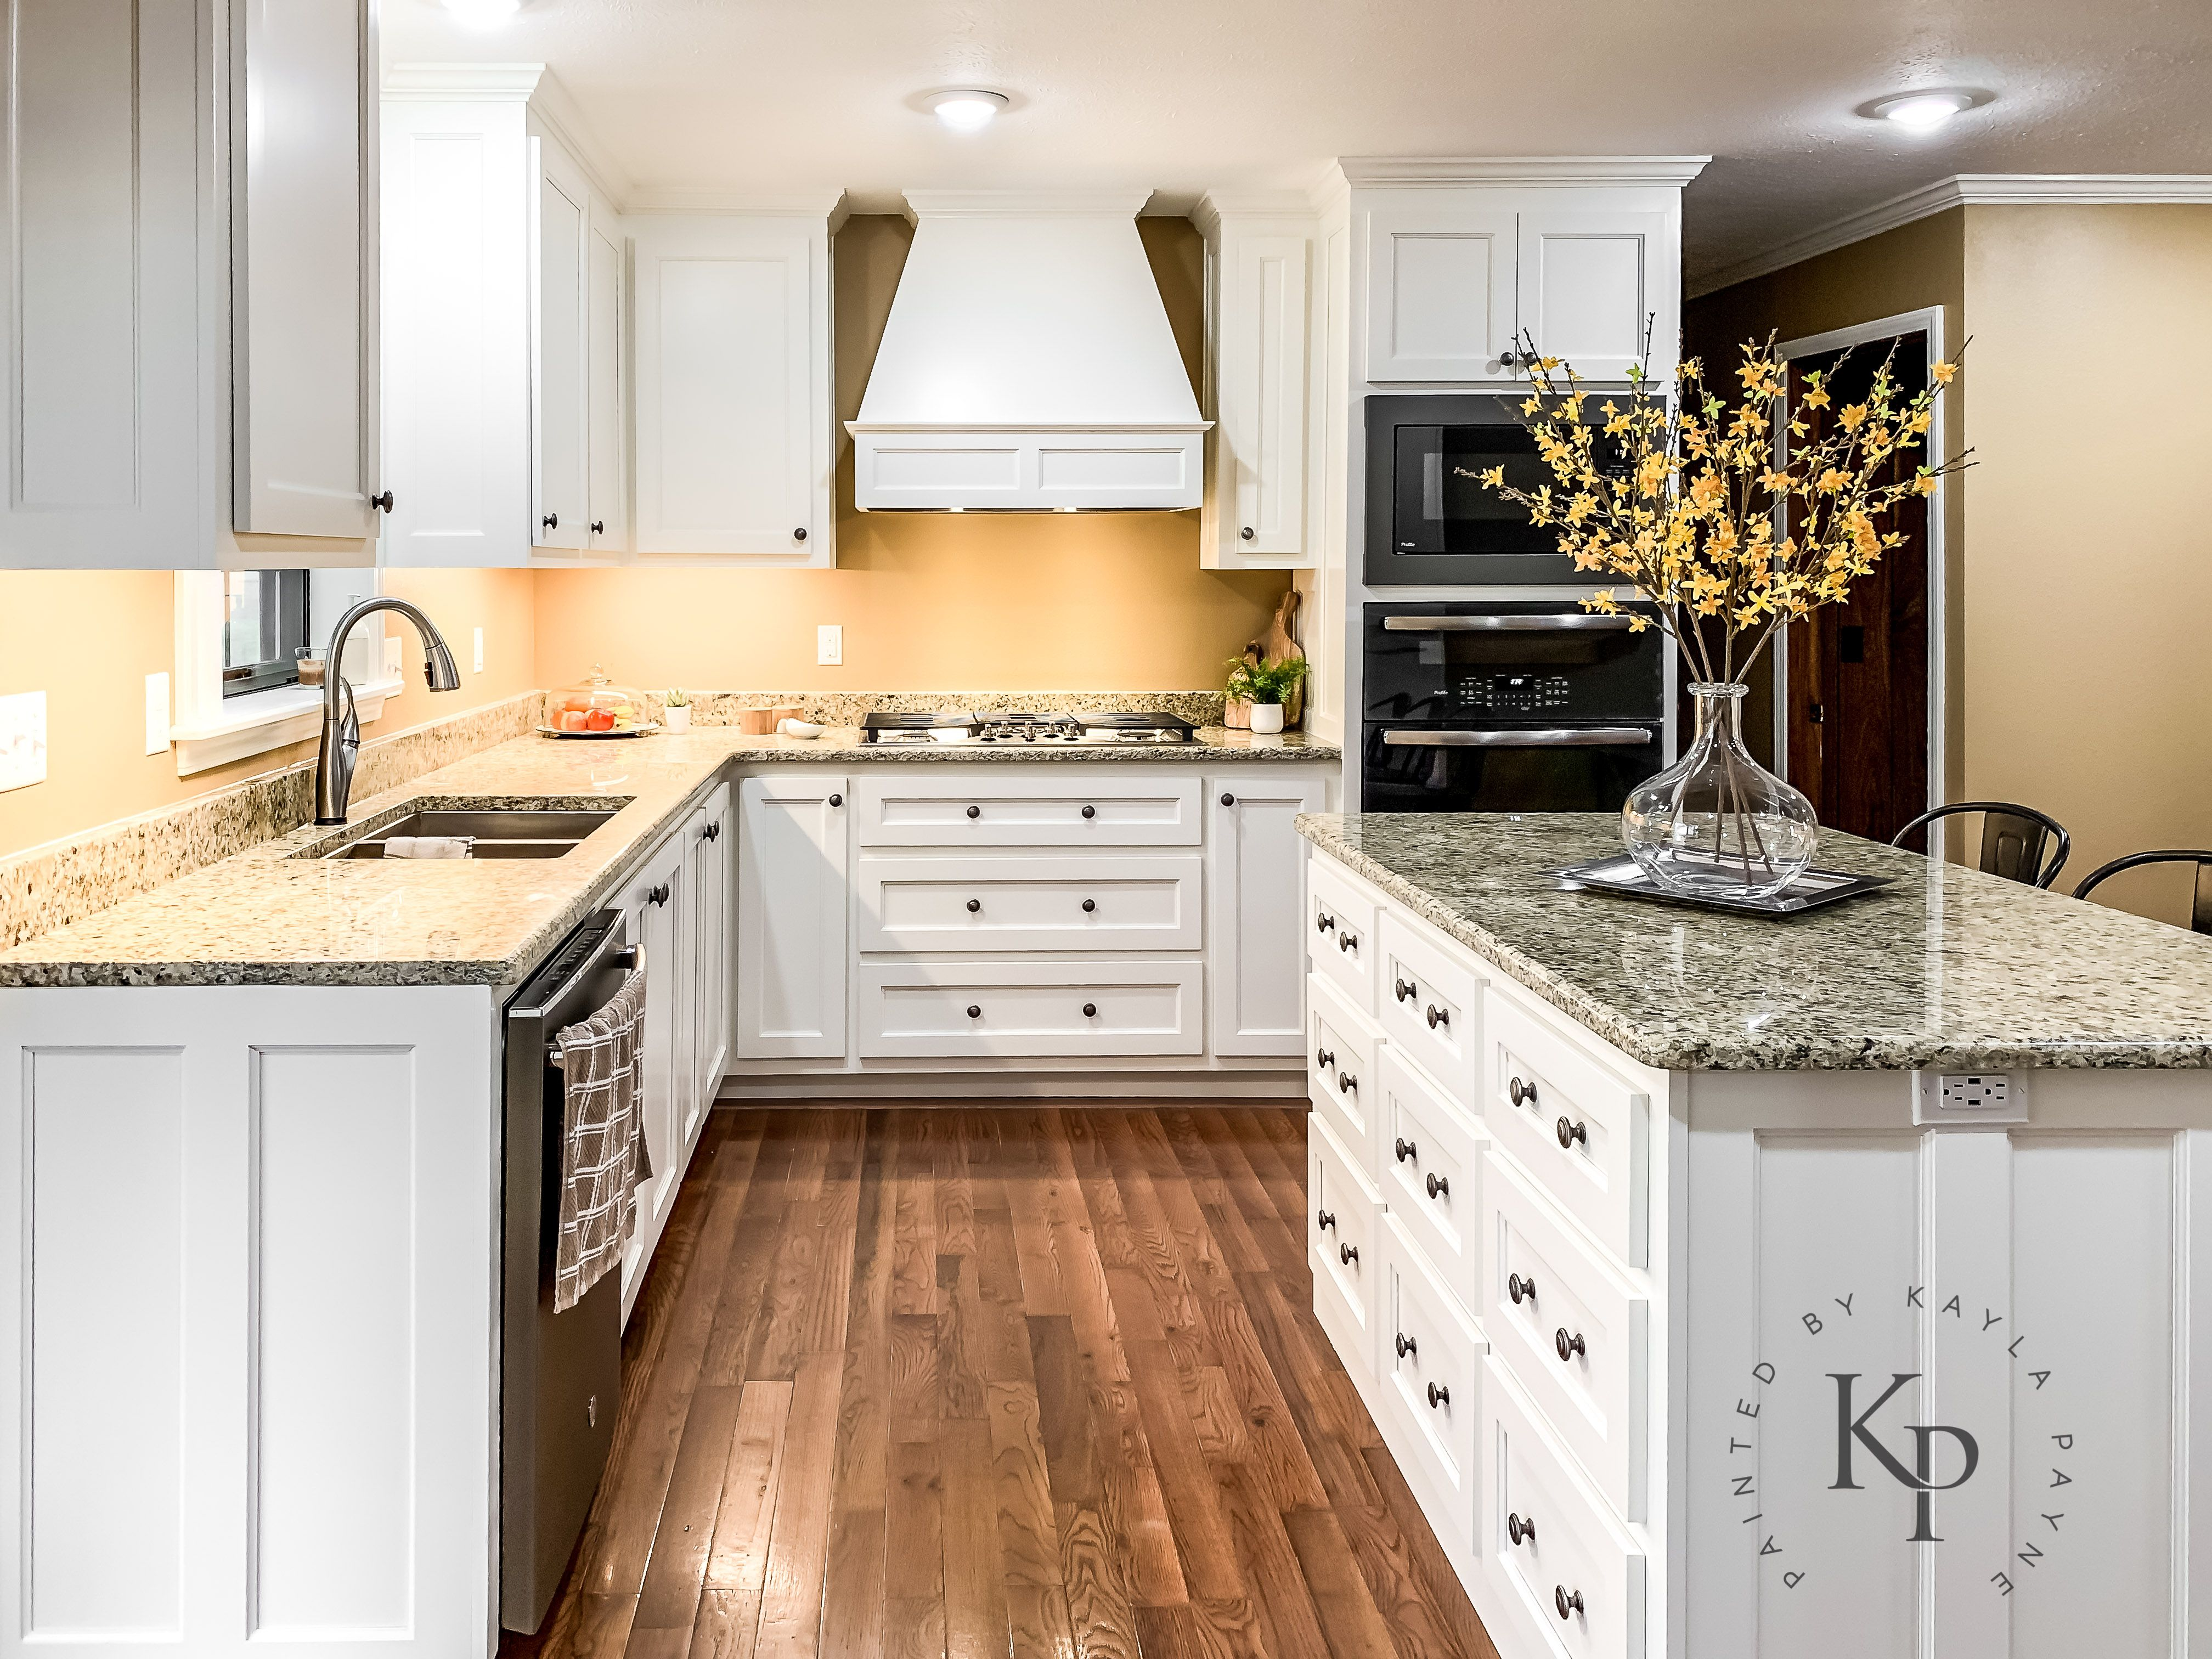 Kitchen Cabinets In Sherwin Williams Dover White Painted By Kayla Payne Painted Kitchen Cabinets Colors Best Cabinet Paint Kitchen Cabinet Colors